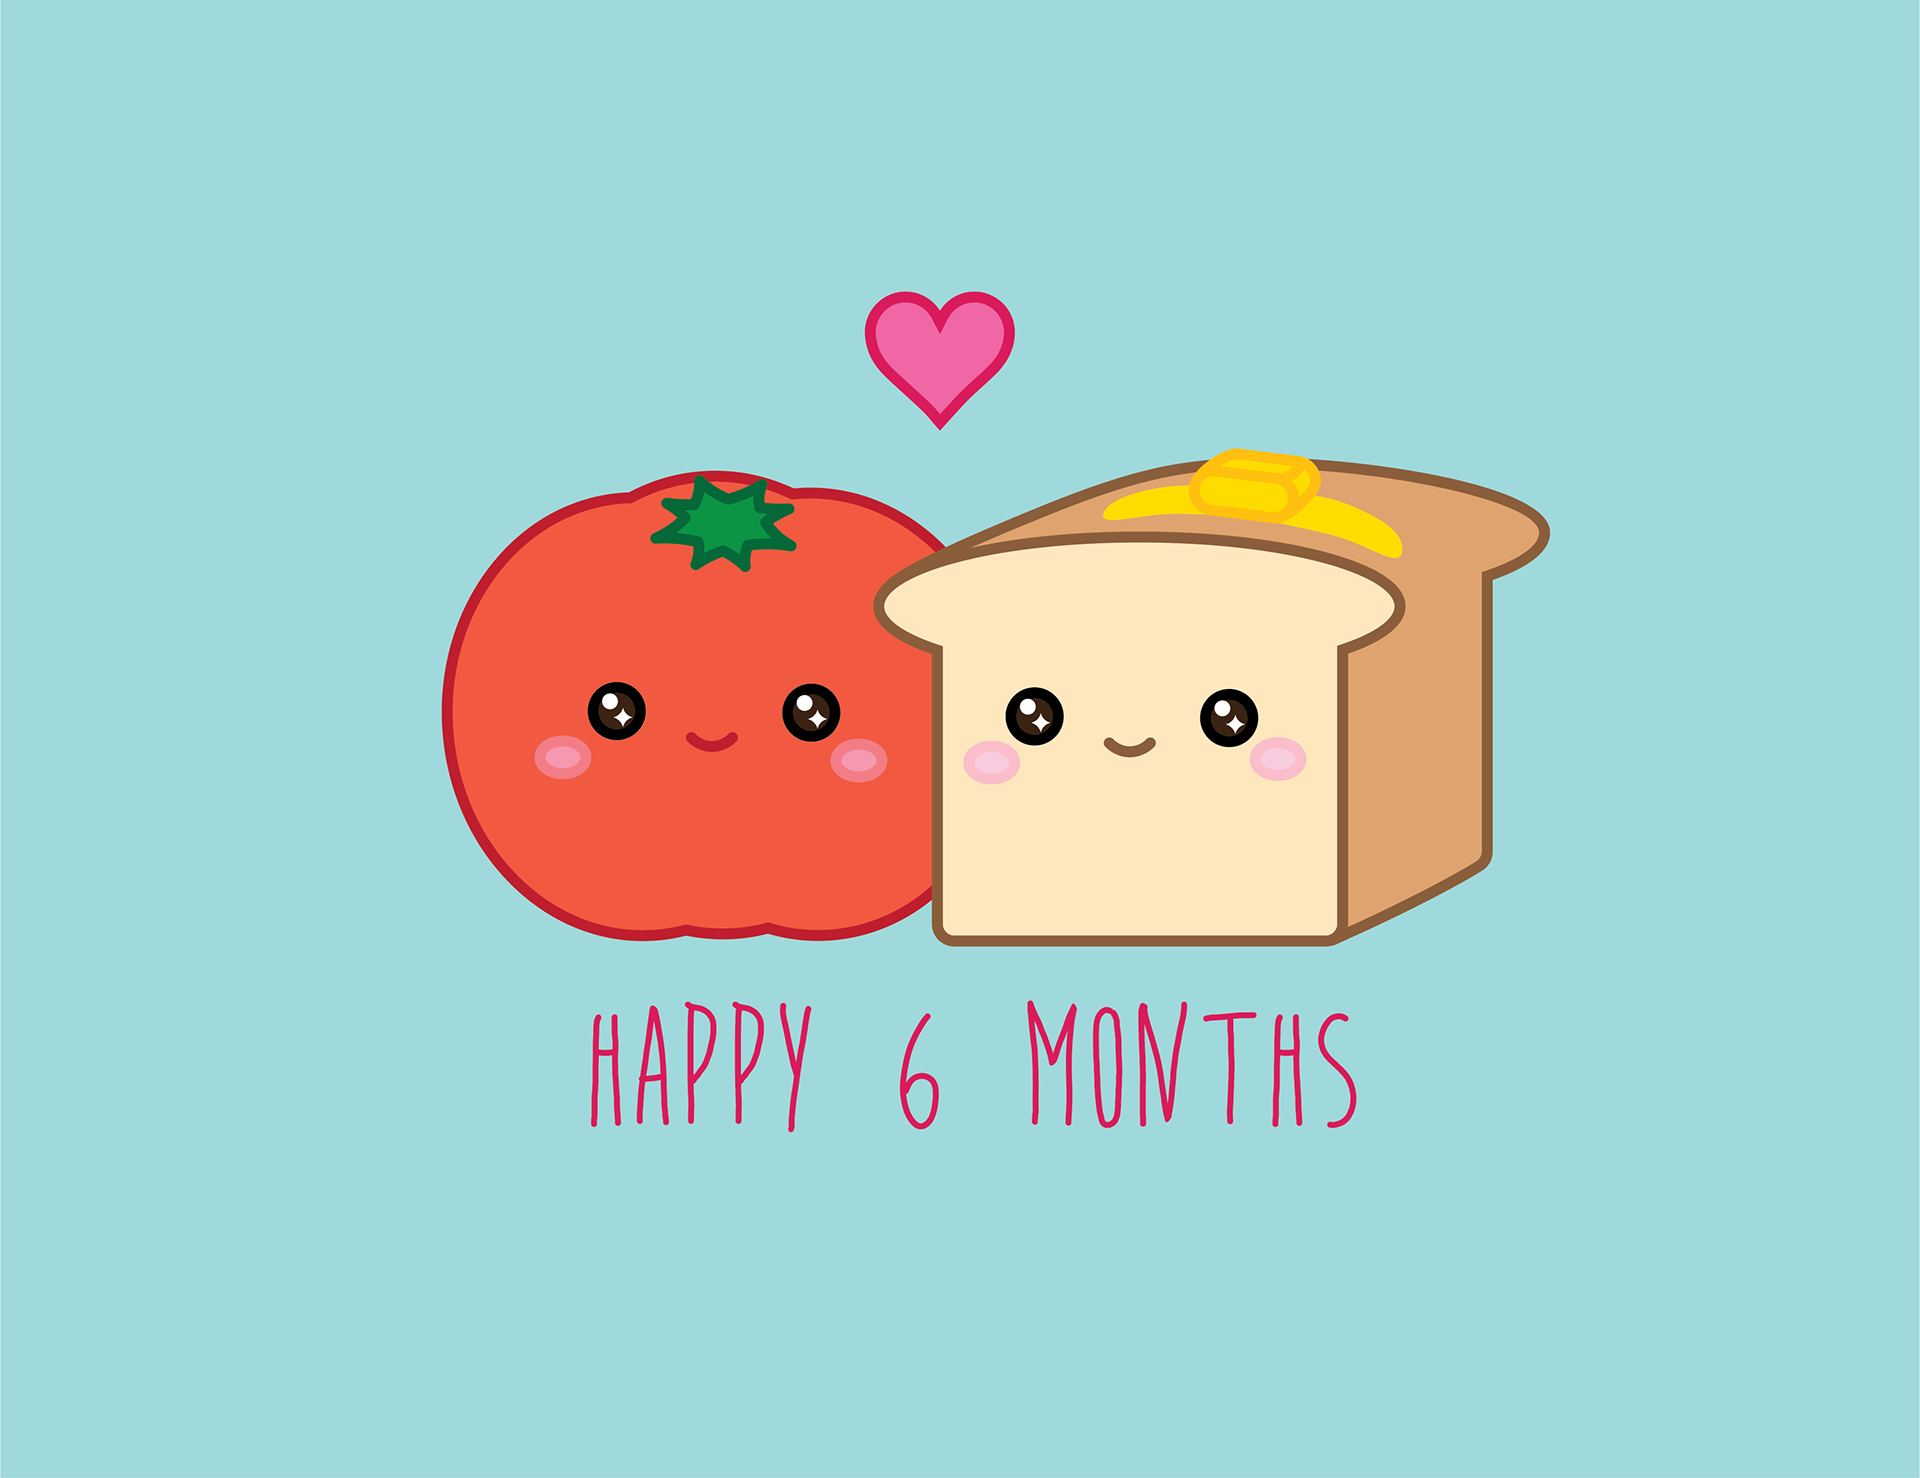 6 month anniversary card